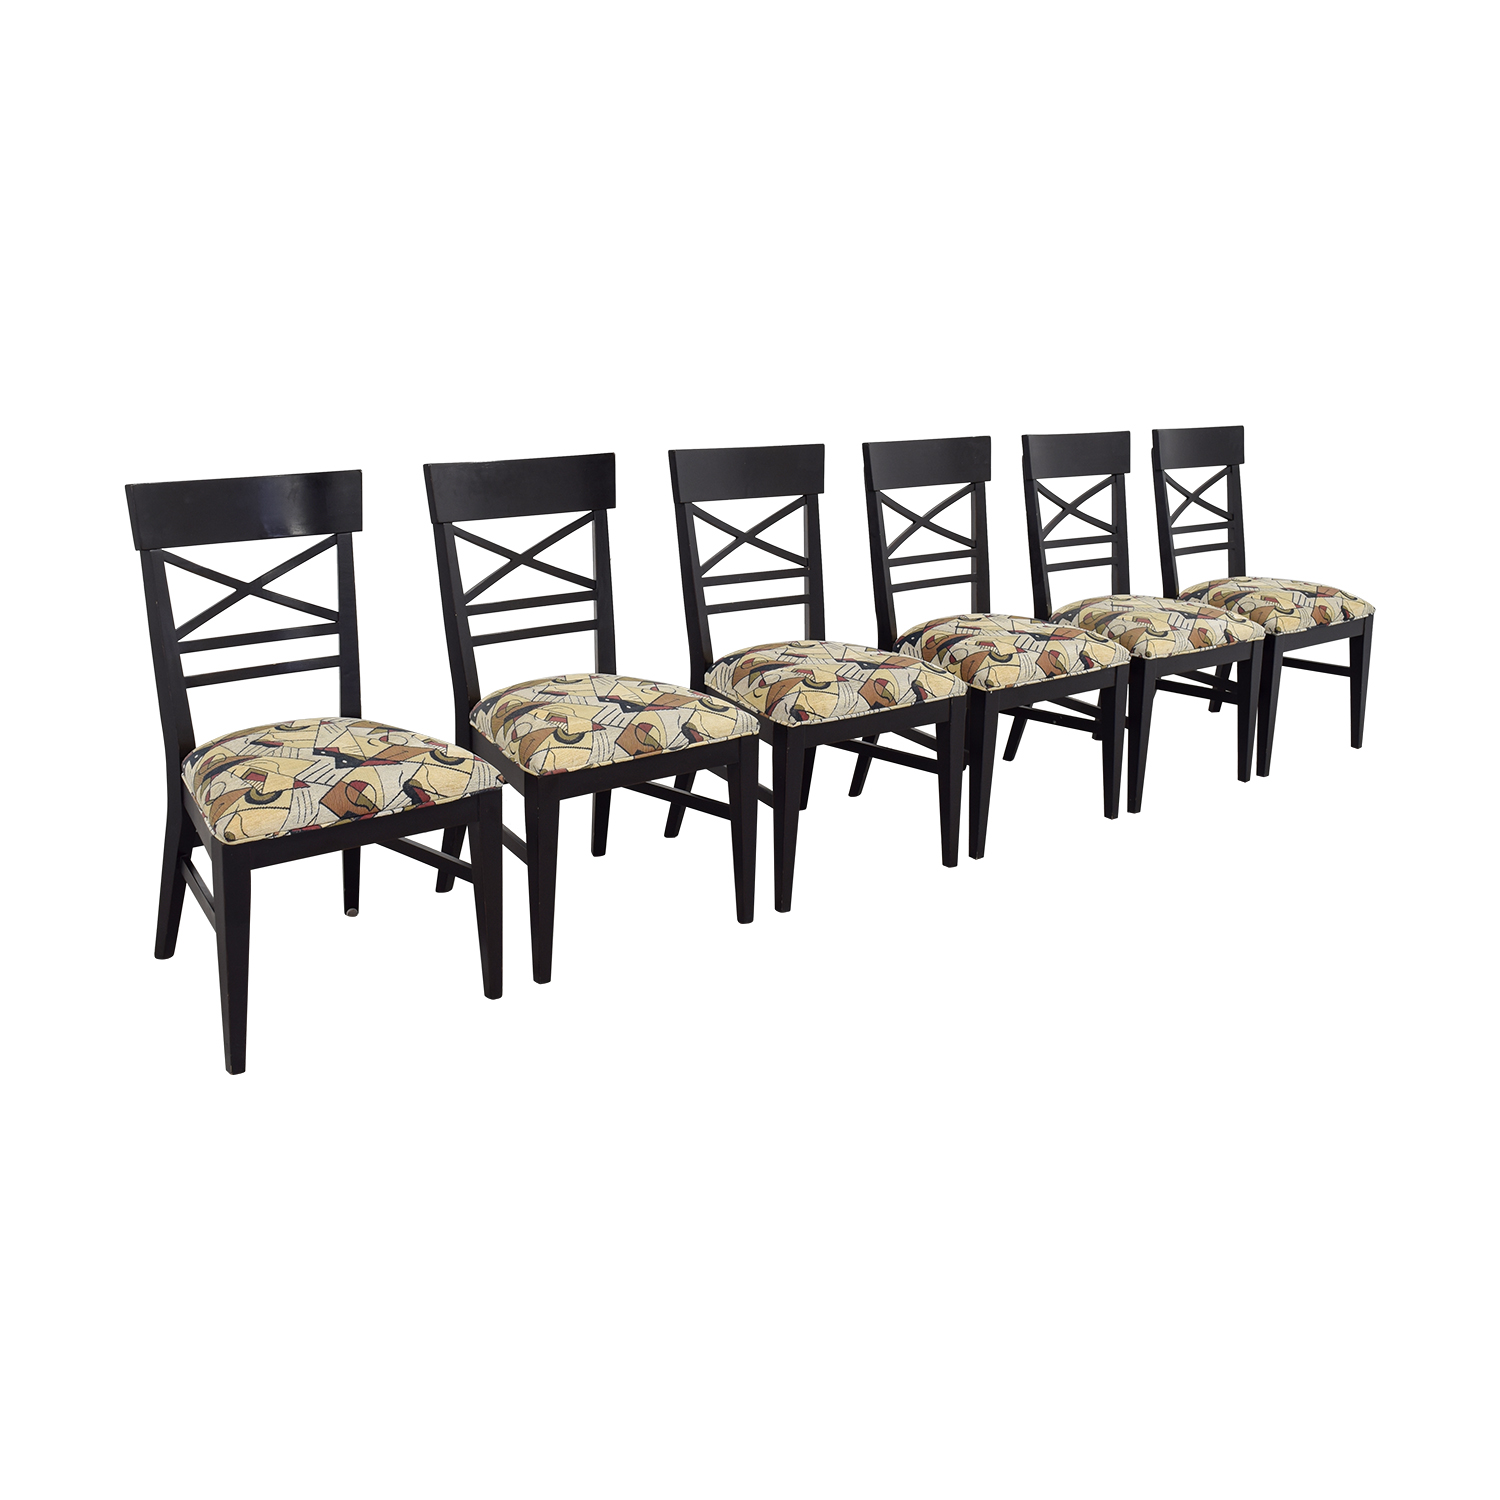 Ethan Allan Ethan Allan Geometric Upholstered Dining Chairs Dining Chairs